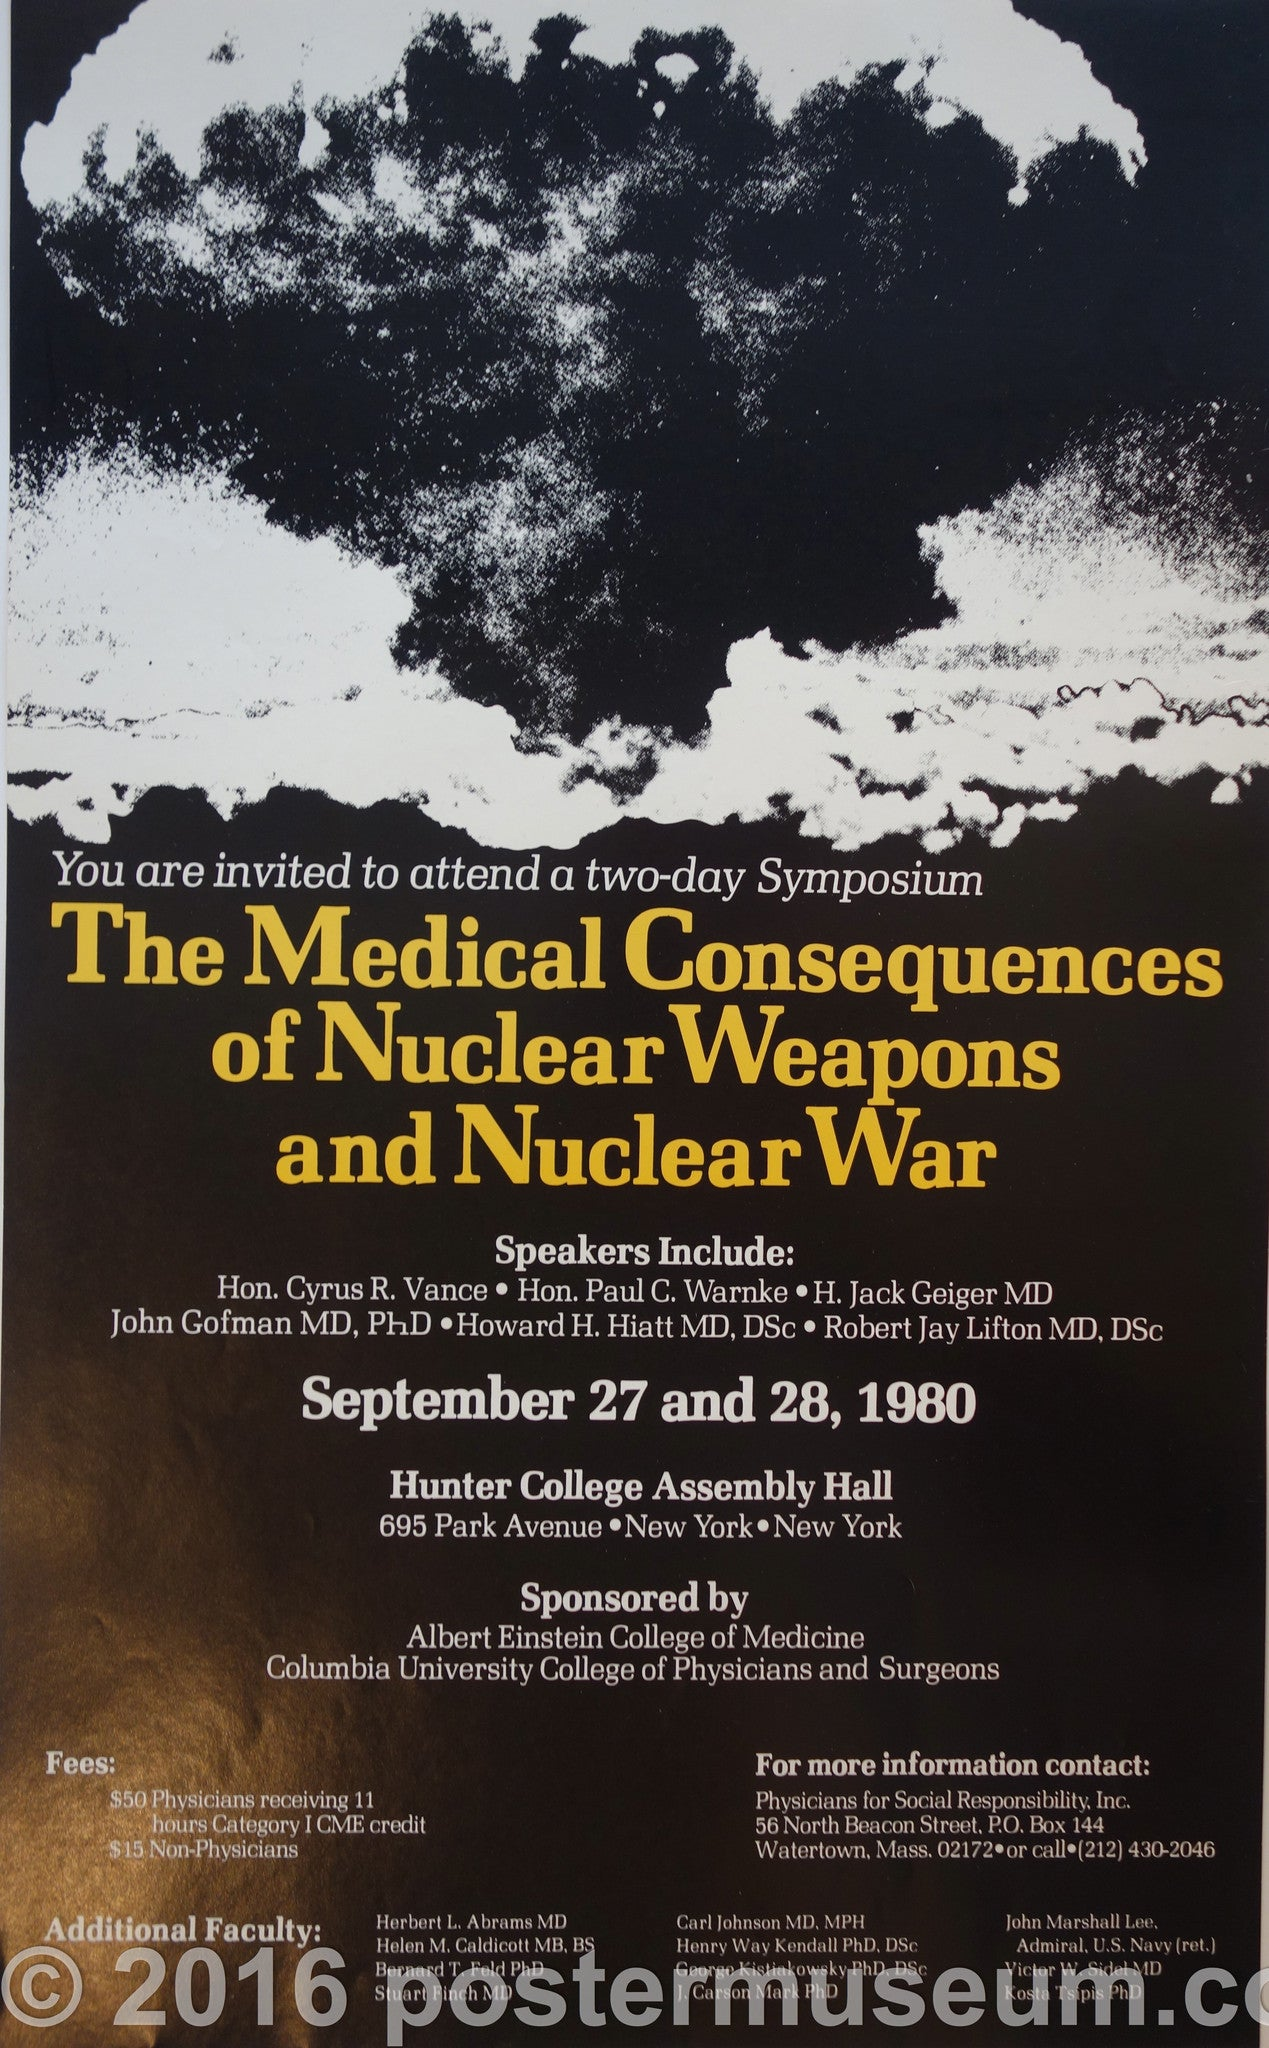 The Medical Consequences of Nuclear Weapons and Nuclear War